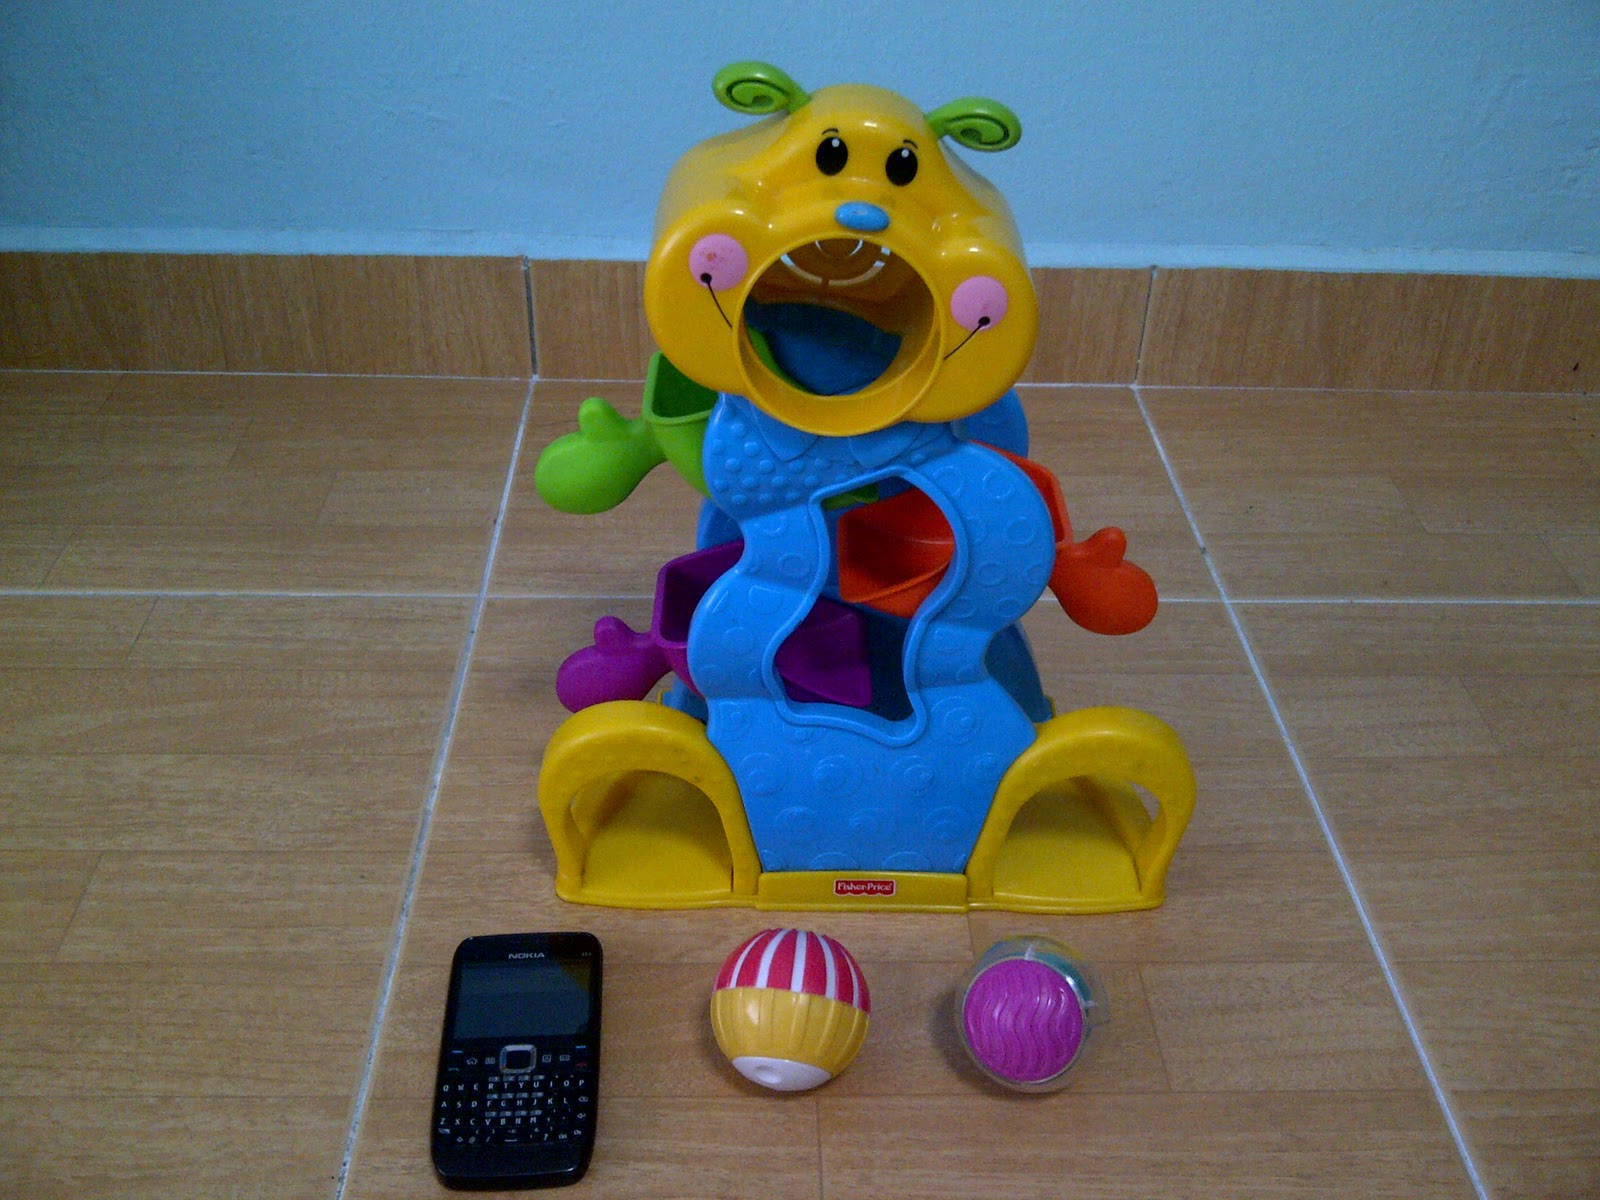 Ball Drop Toy : Special toys shop fisher price roll a rounds tumble bug